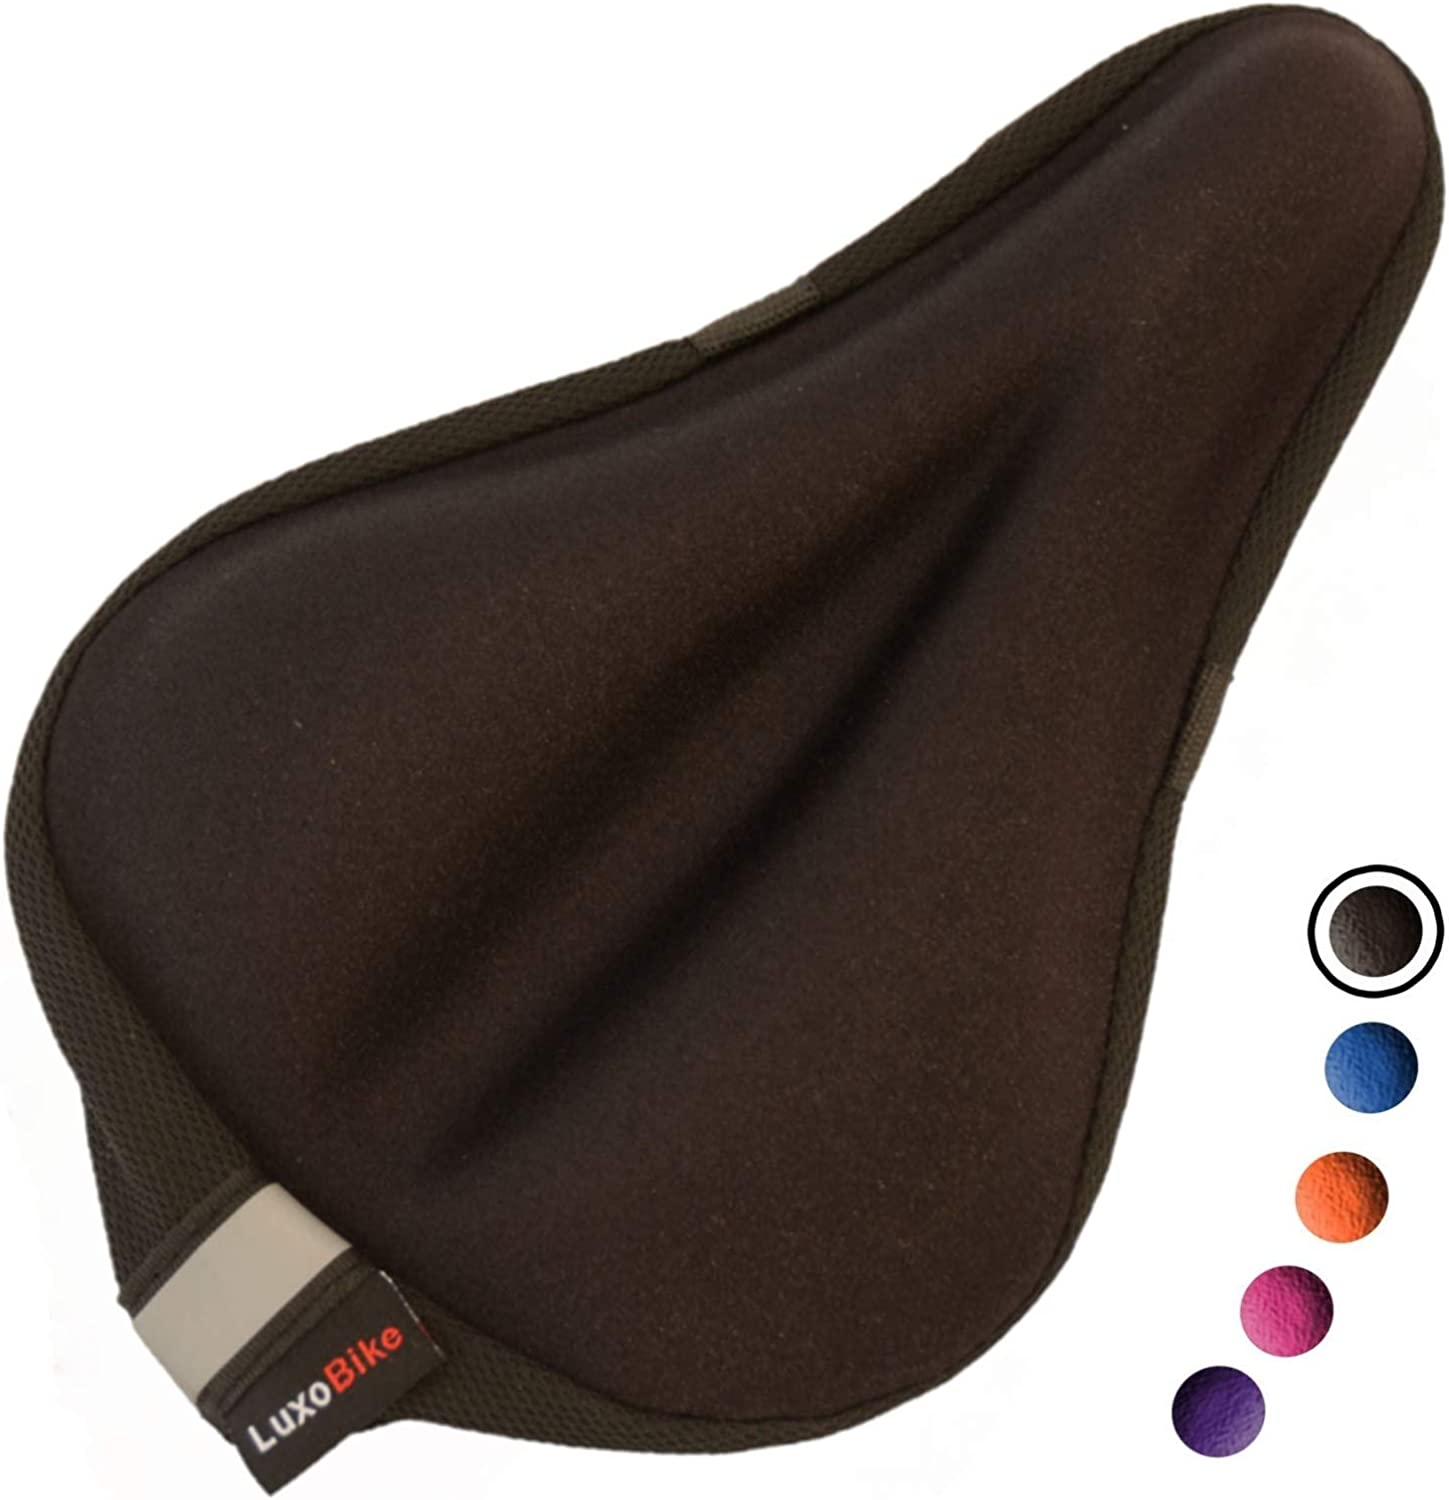 Ergometer Saddle Cover Bike Saddle Cover Genuine Lambskin for gelsättel